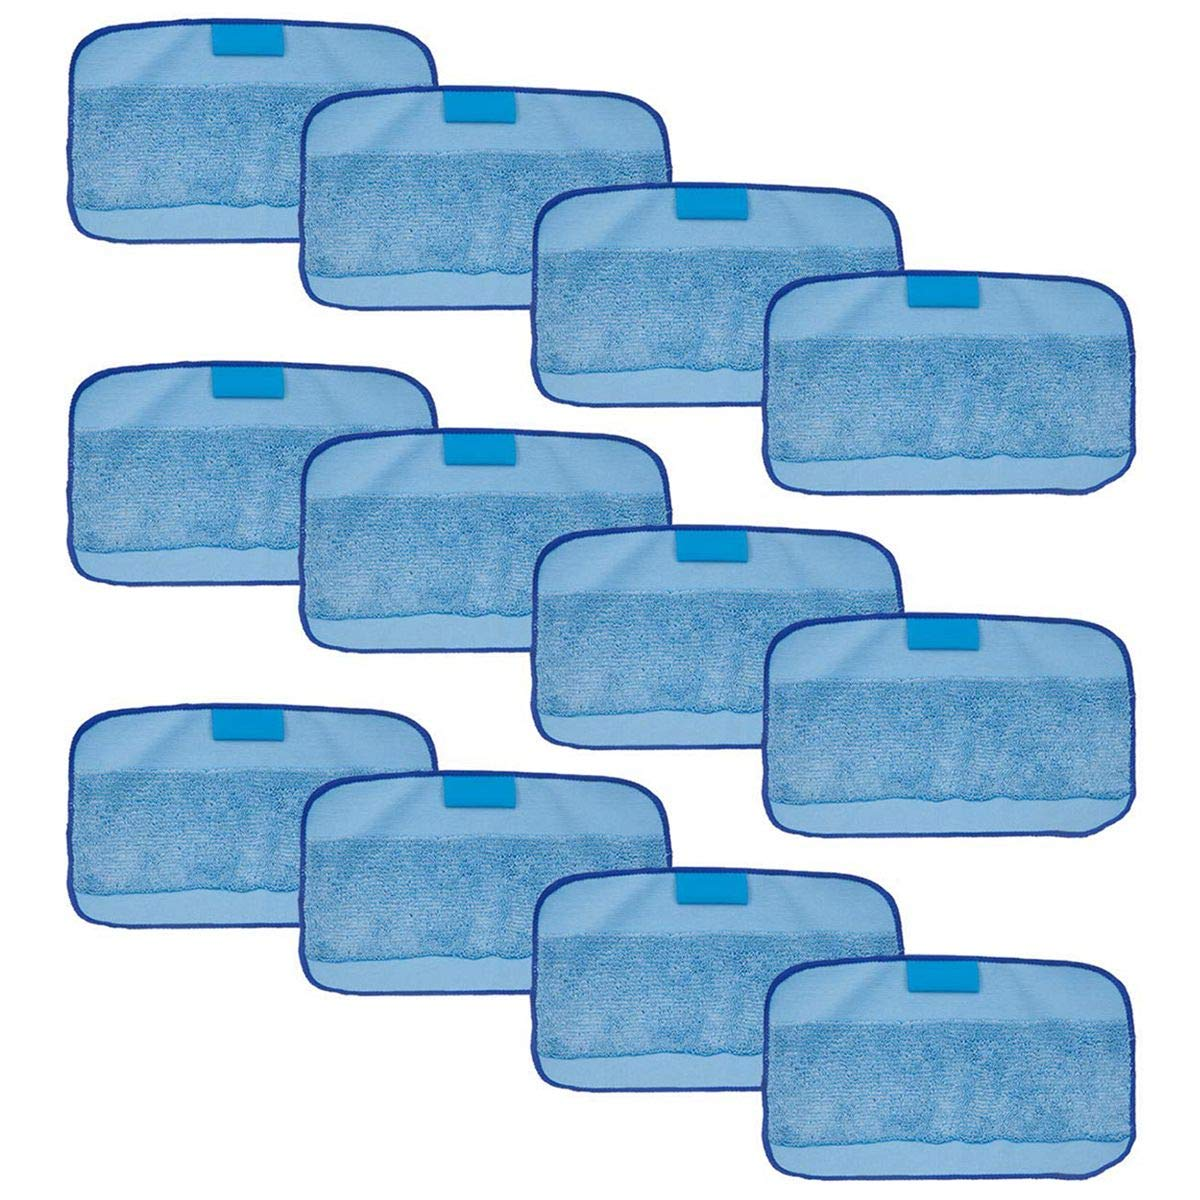 SODIAL 12-Packs Wet Cloths for Braava, Replacement Washable Pro Mopping Cloths for iRobot Braava 380t 320 Mint 4200 5200